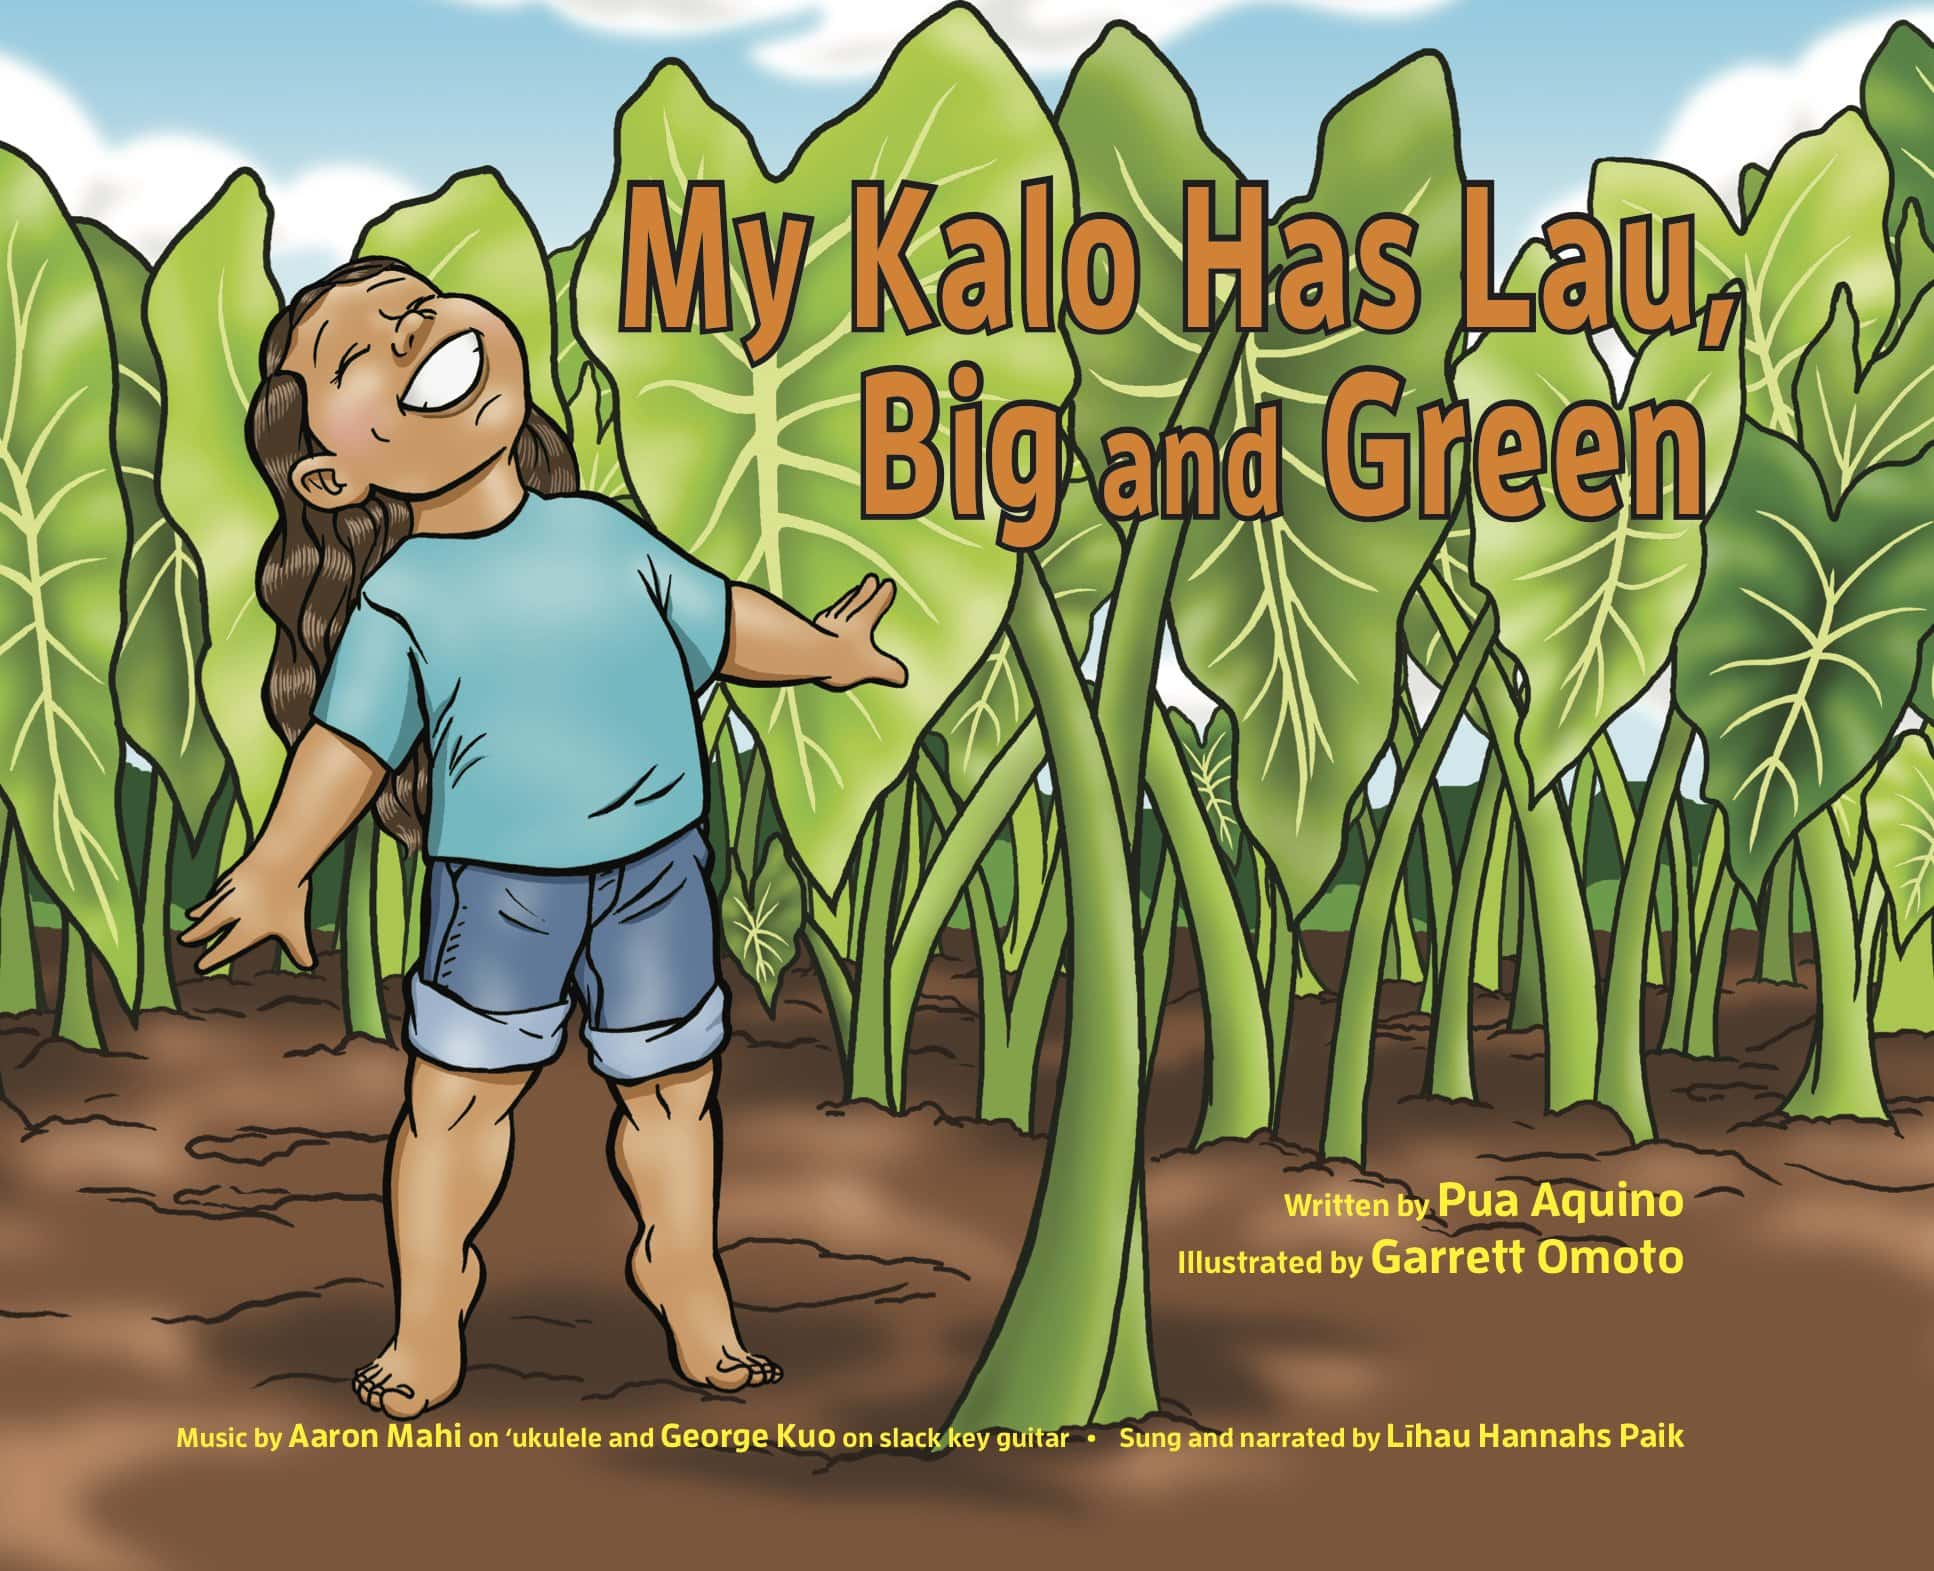 My Kalo Has Lau Big and Green